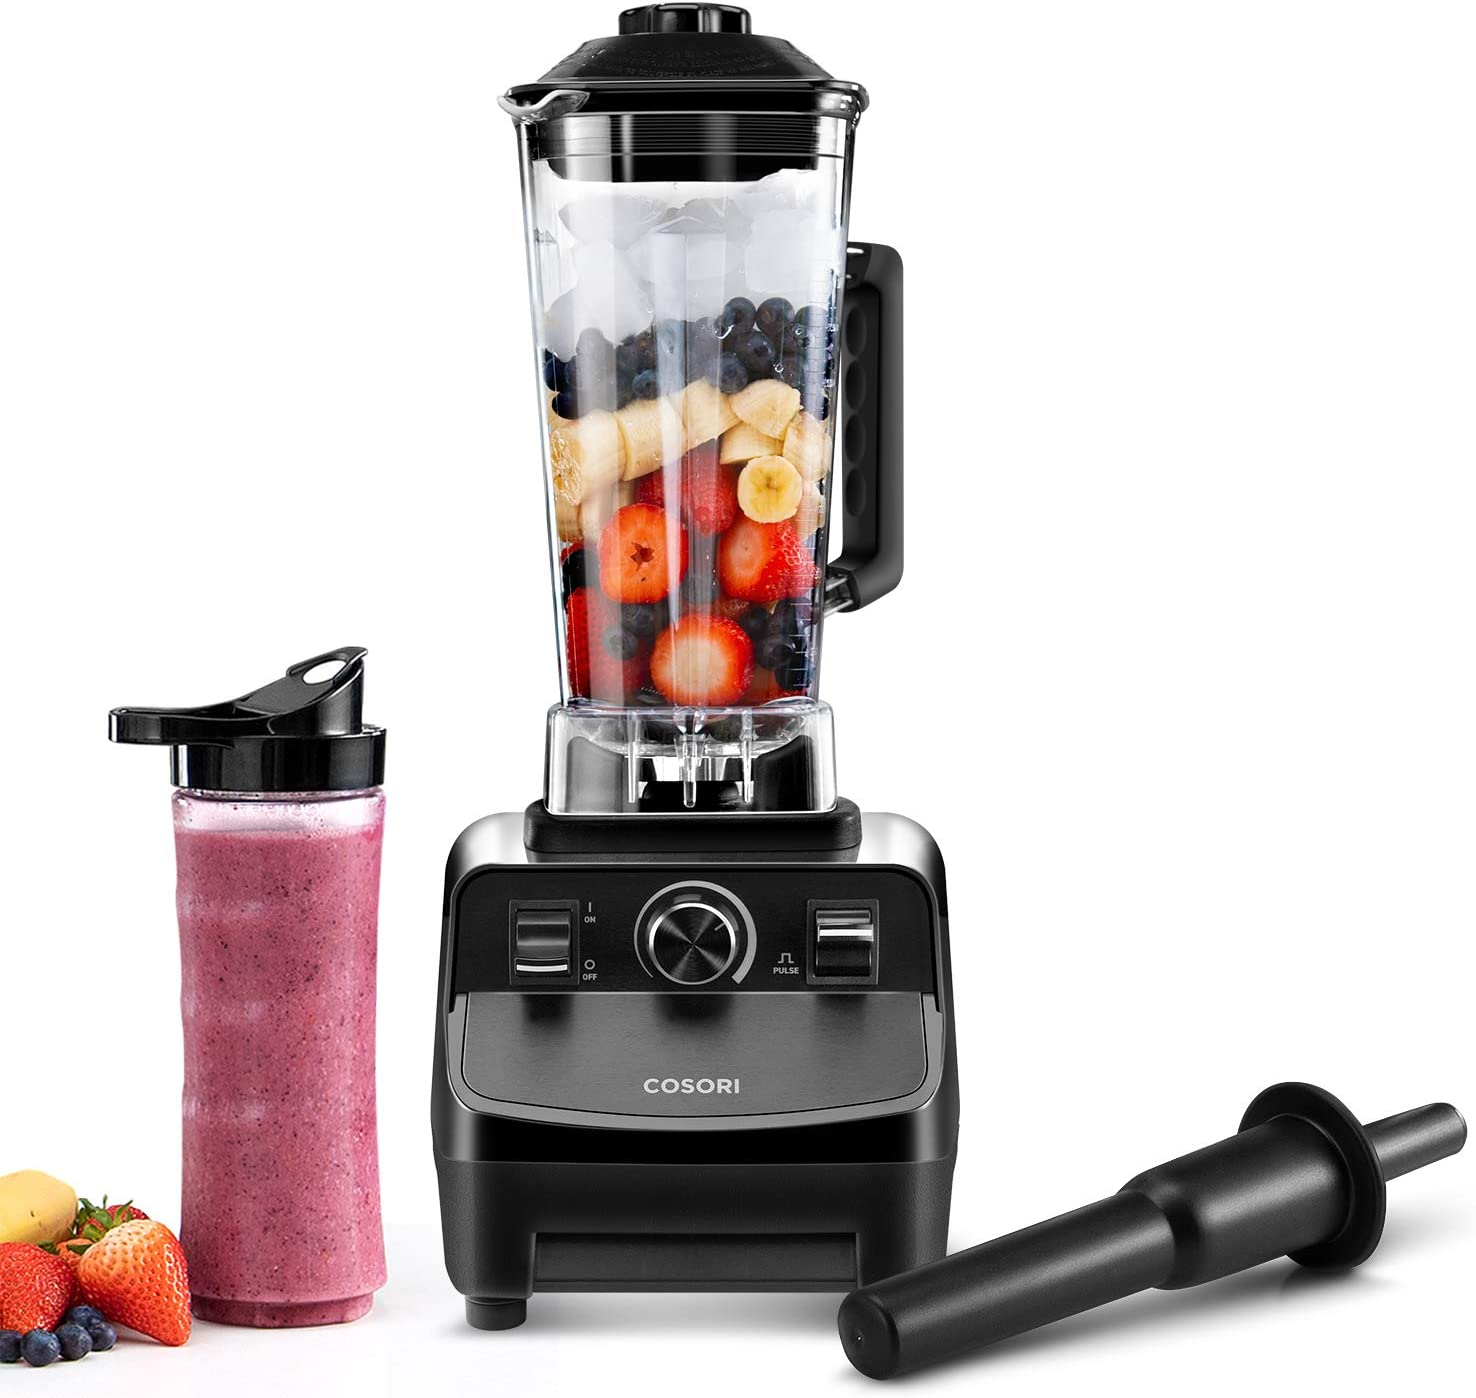 COSORI Blender for Shakes and Smoothies(50 Recipes),1400W Heavy Duty Professional Blender for Crushing Ice, Frozen Fruit with 64oz Pitcher&20oz Travel Bottle,2-Year Warranty,ETL Listed/FDA Compliant